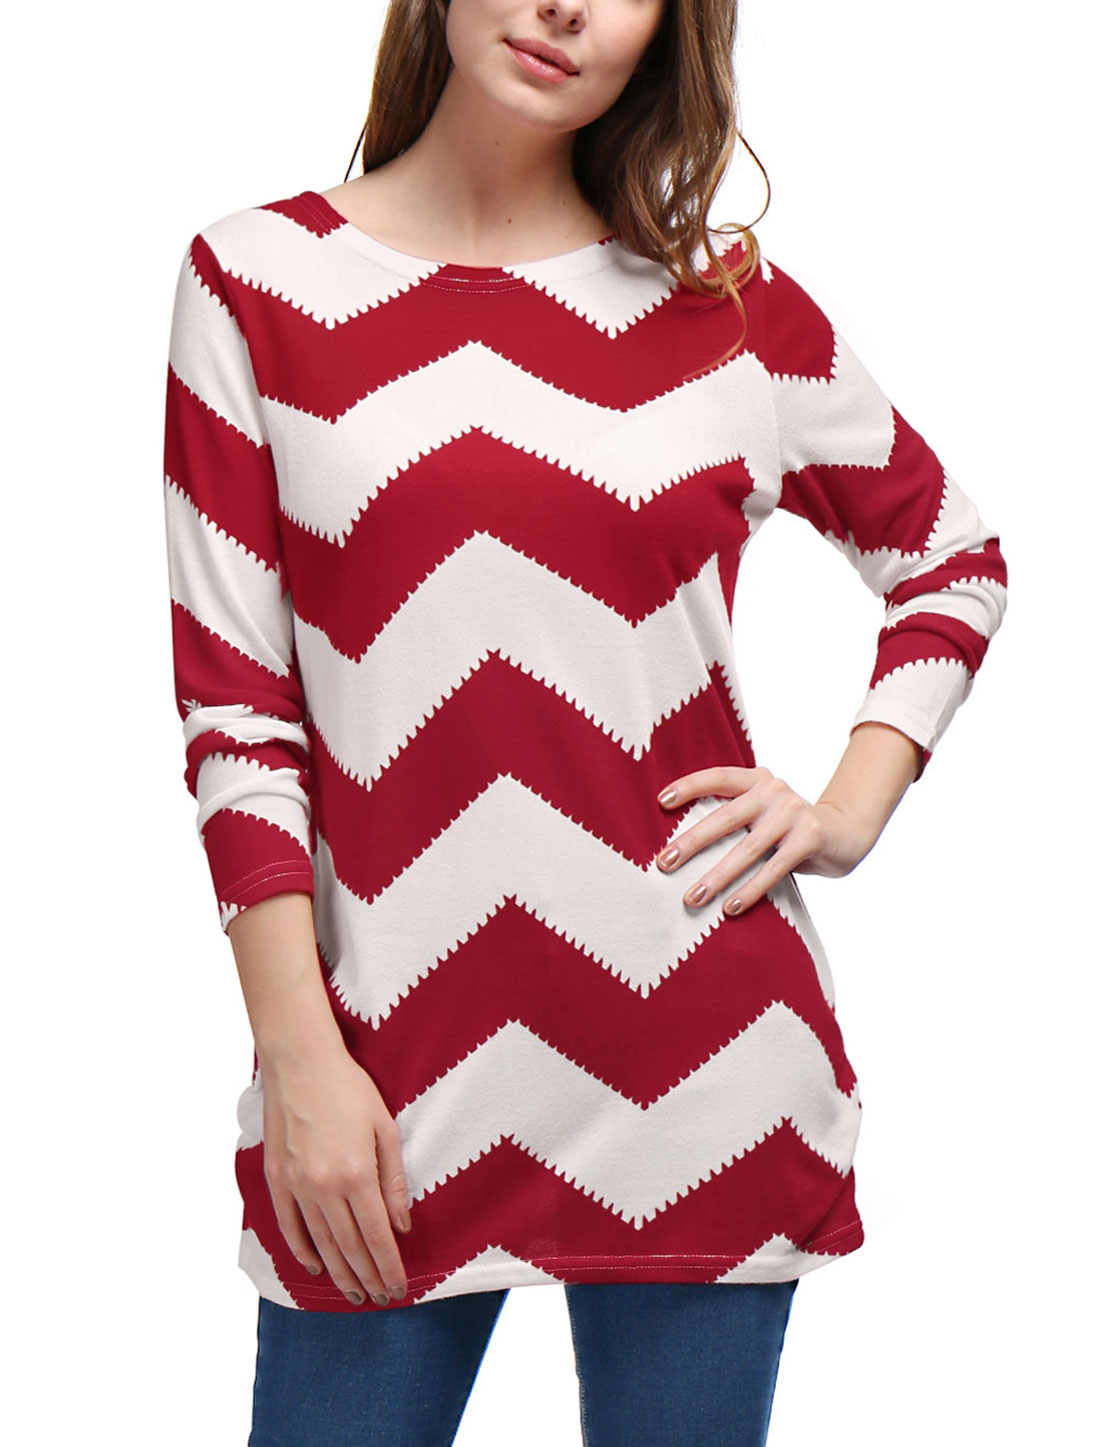 Allegra K Woman Zig-Zag Pattern Knitted Relax Fit Tunic Top Red White S